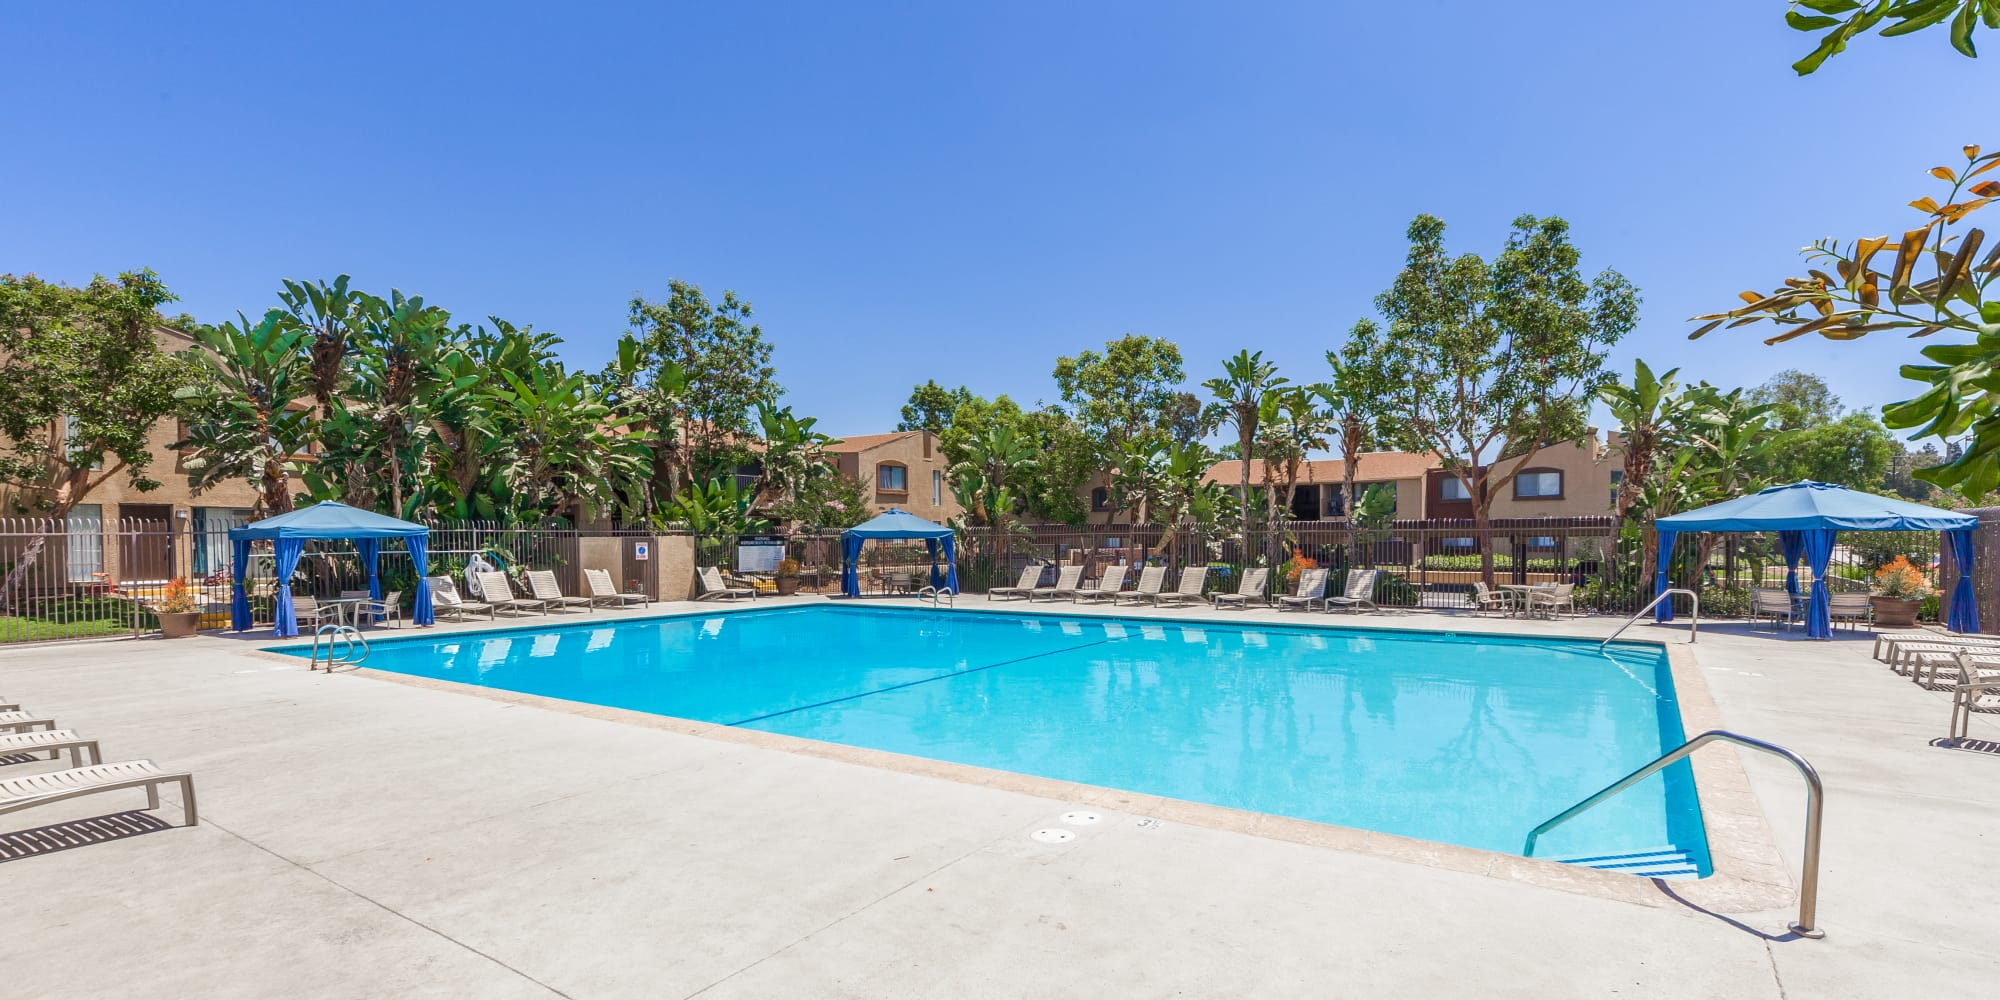 Beautiful swimming pool at West Fifth Apartments in Ontario, California